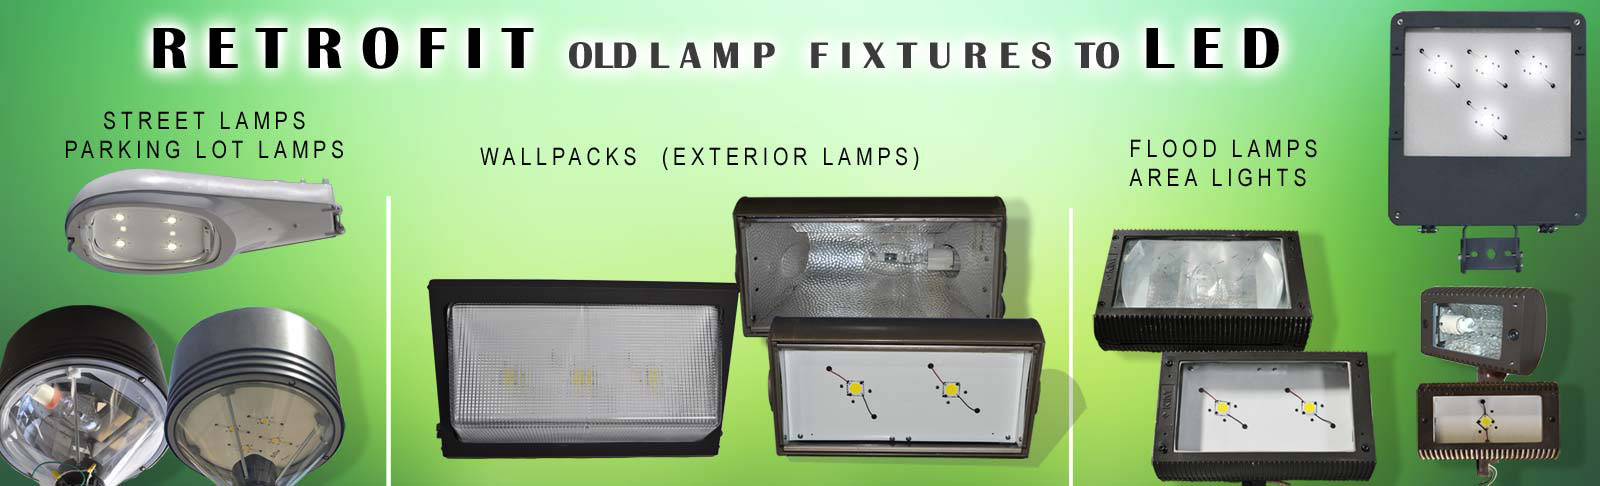 RETROFIT OLD LAMP FIXTURES WITH LEDS